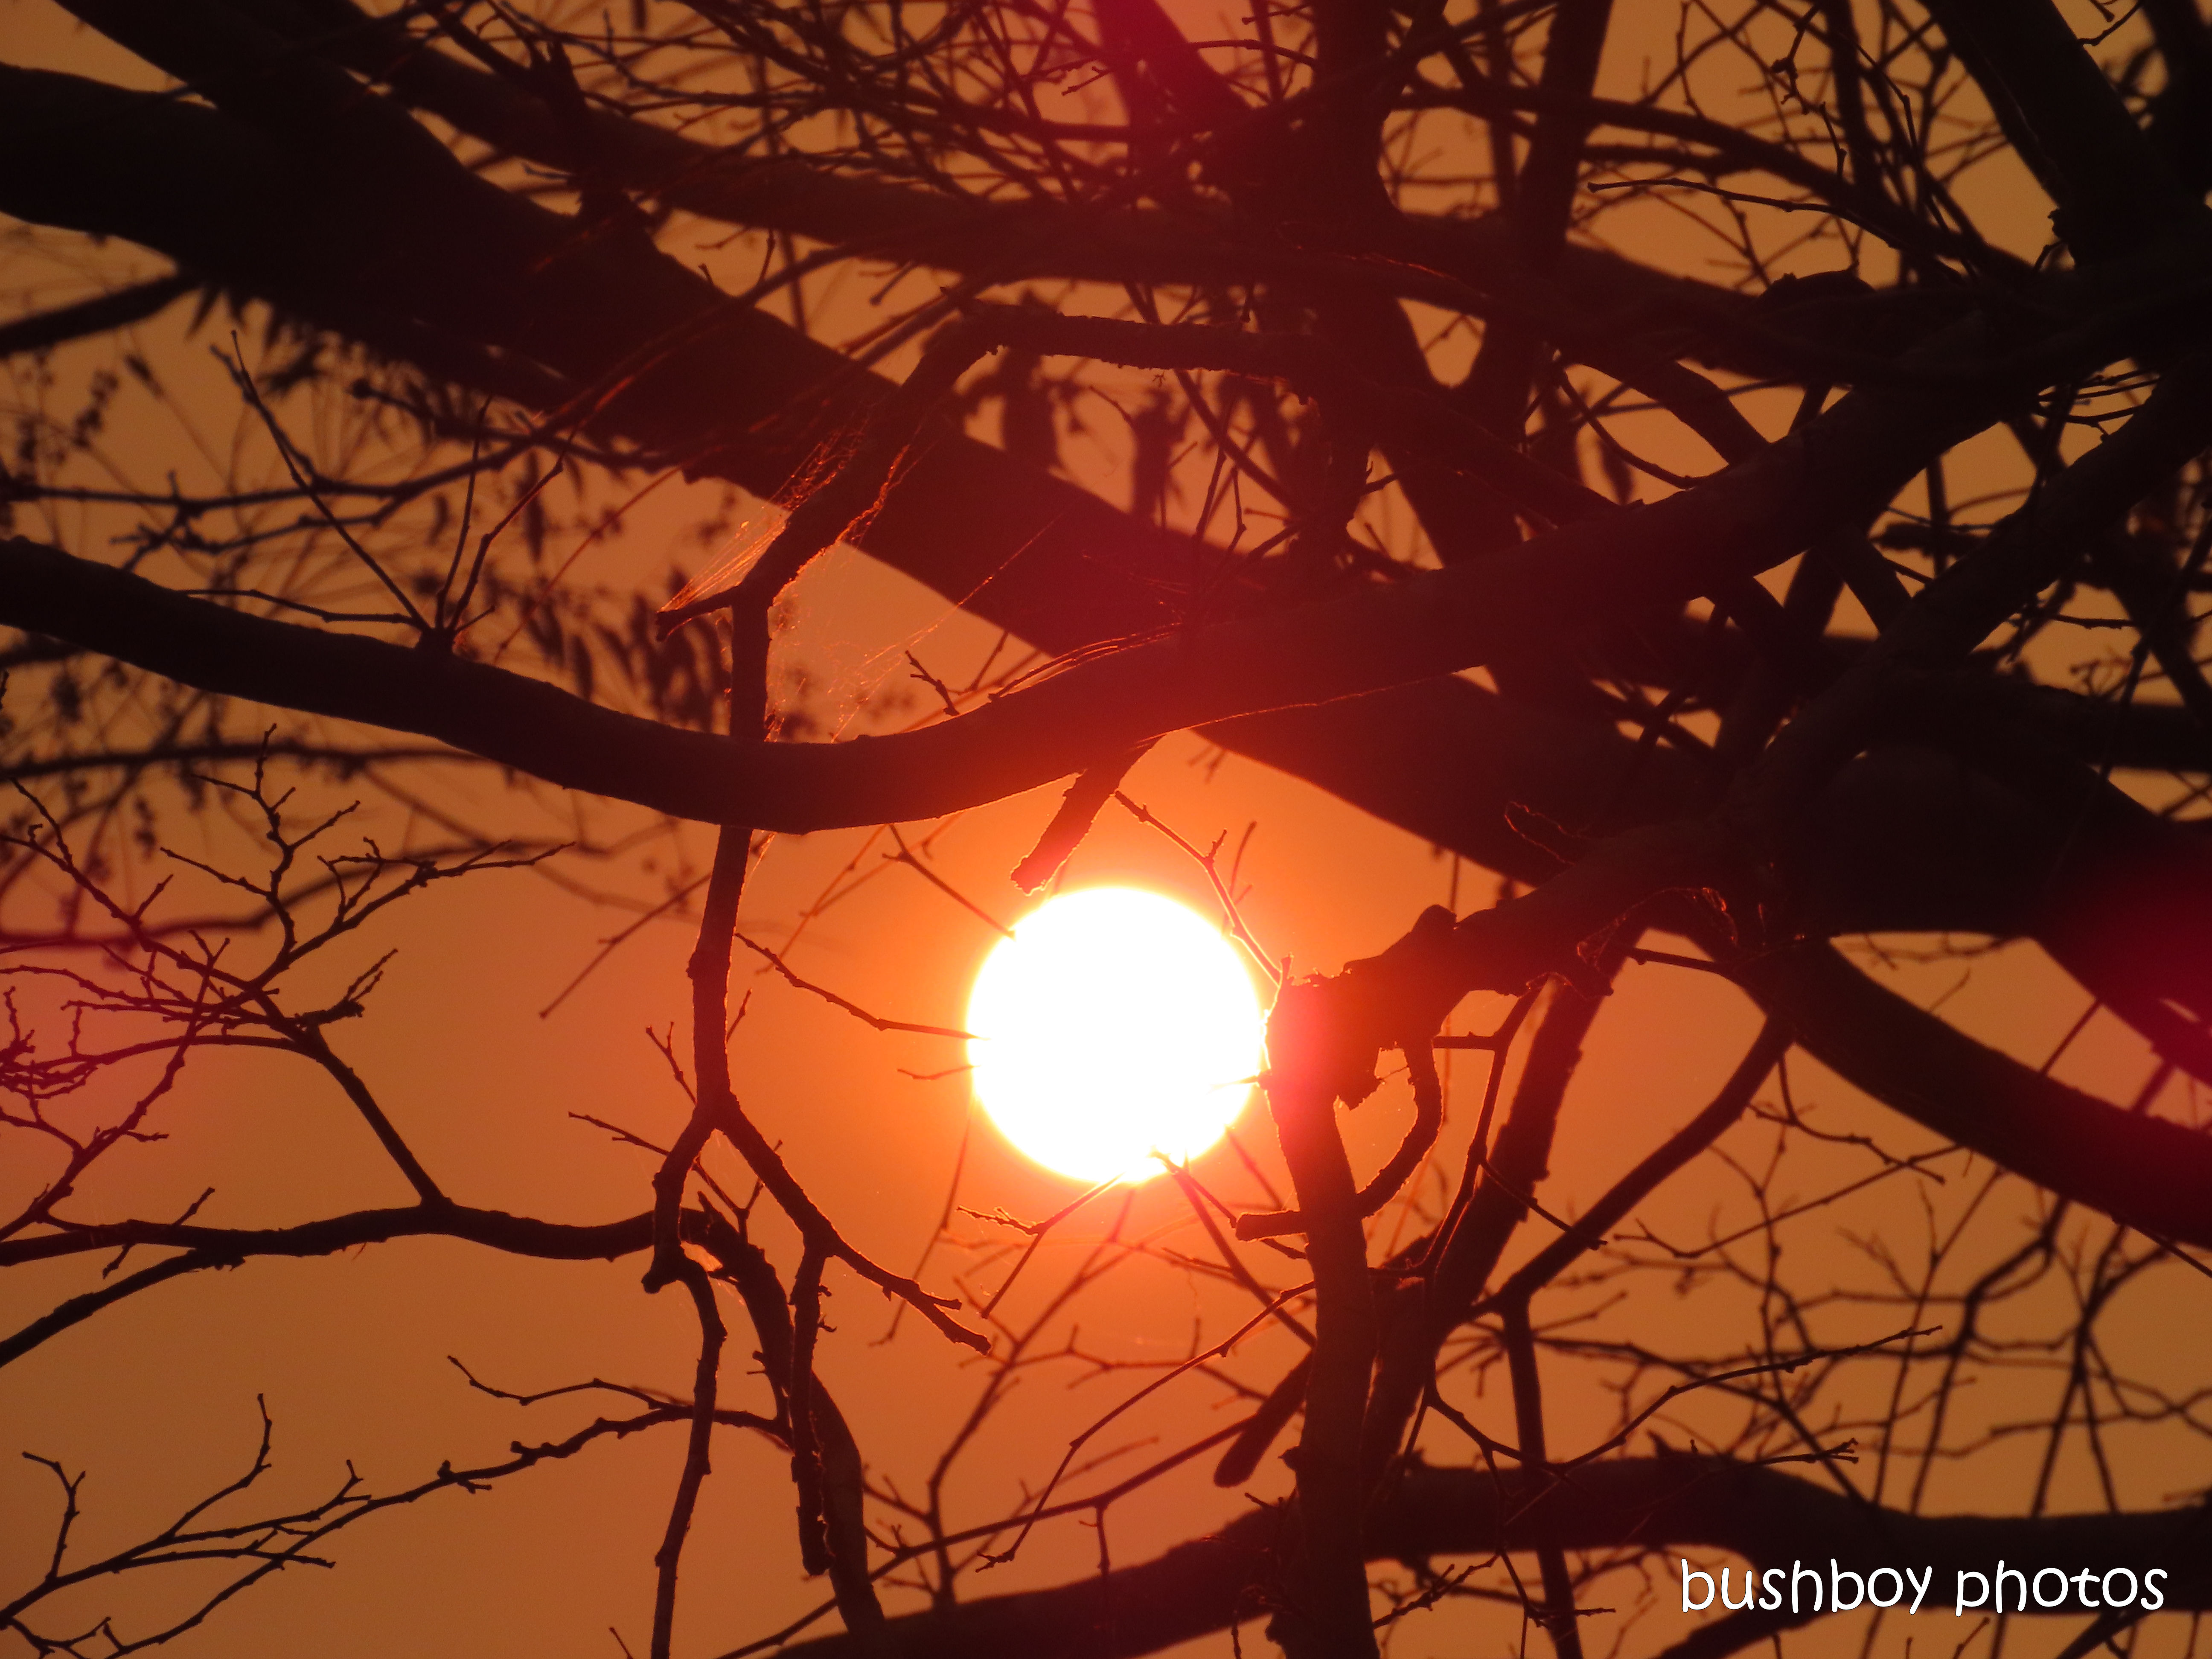 191023_blog_challenge_sunset_tree_fire_orange